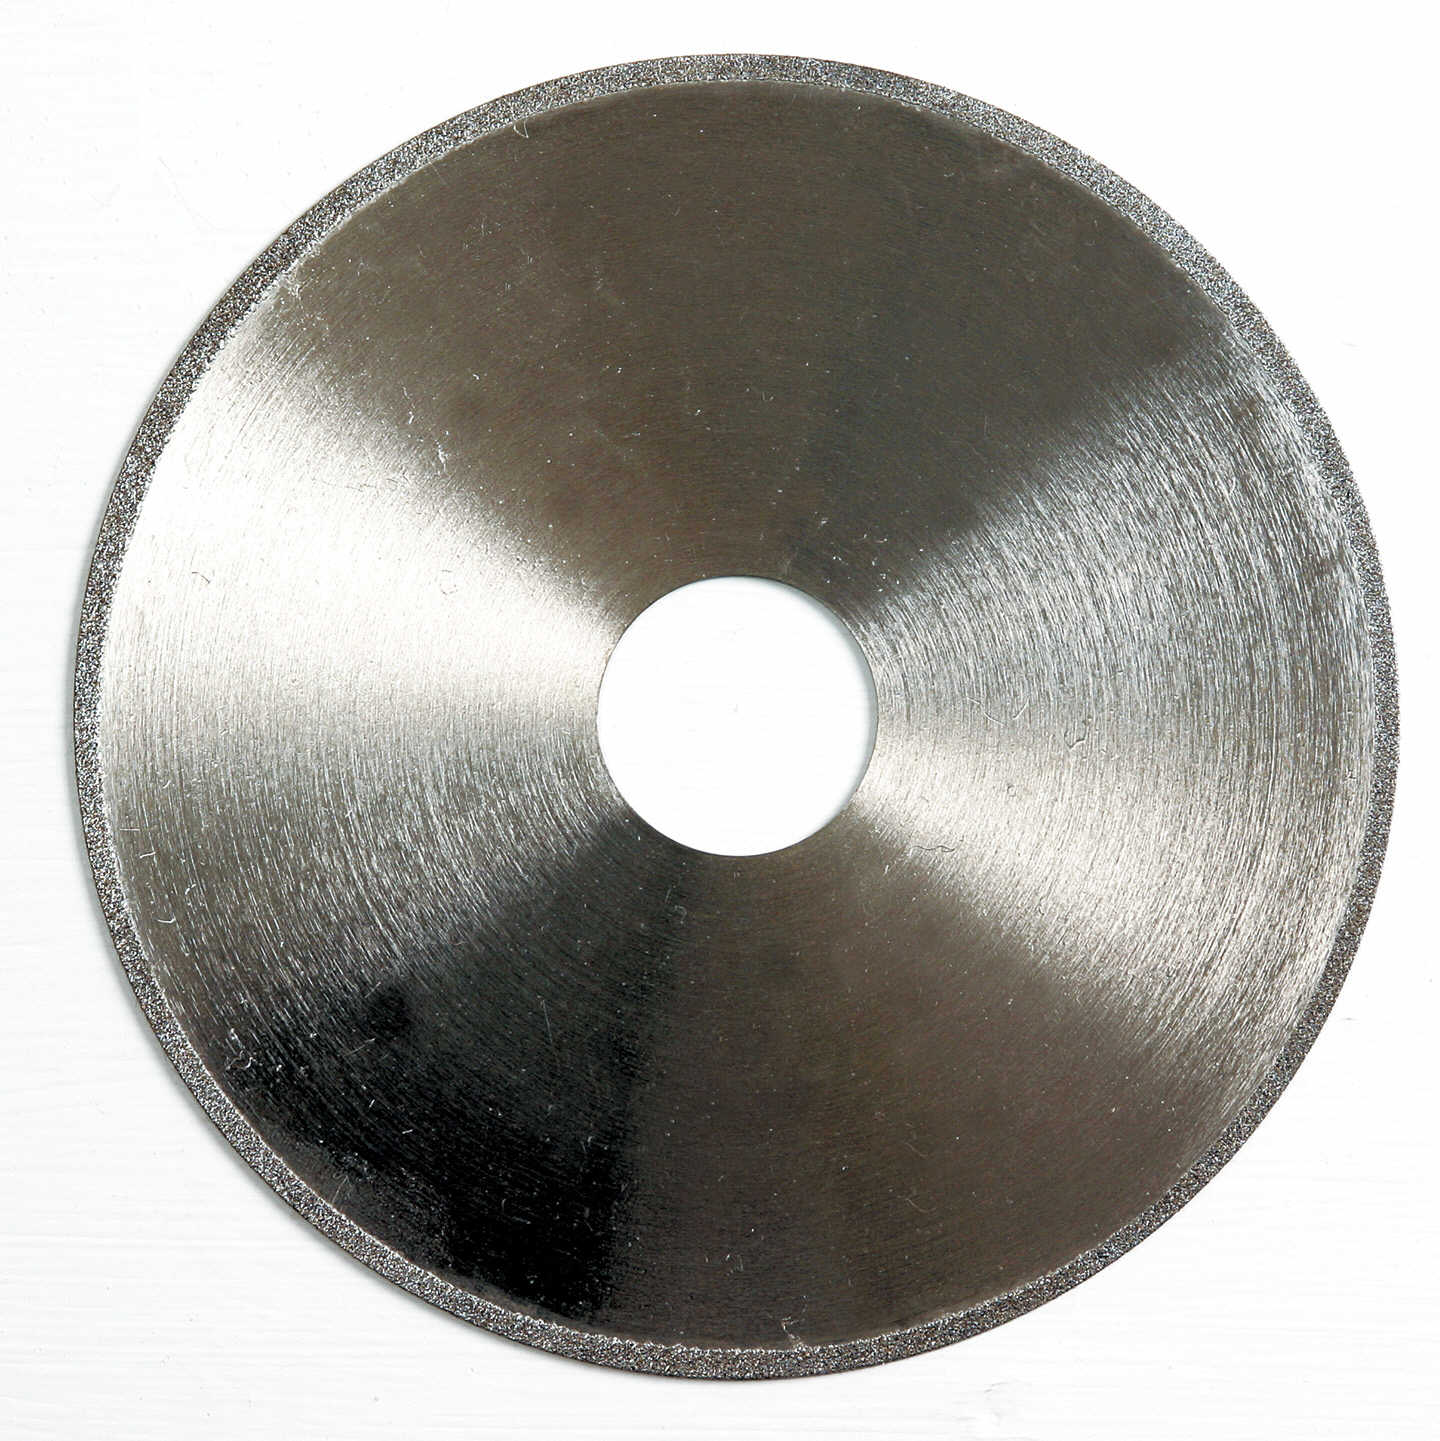 30mm Diameter Diamond Cutting Discs Abtec4abrasives